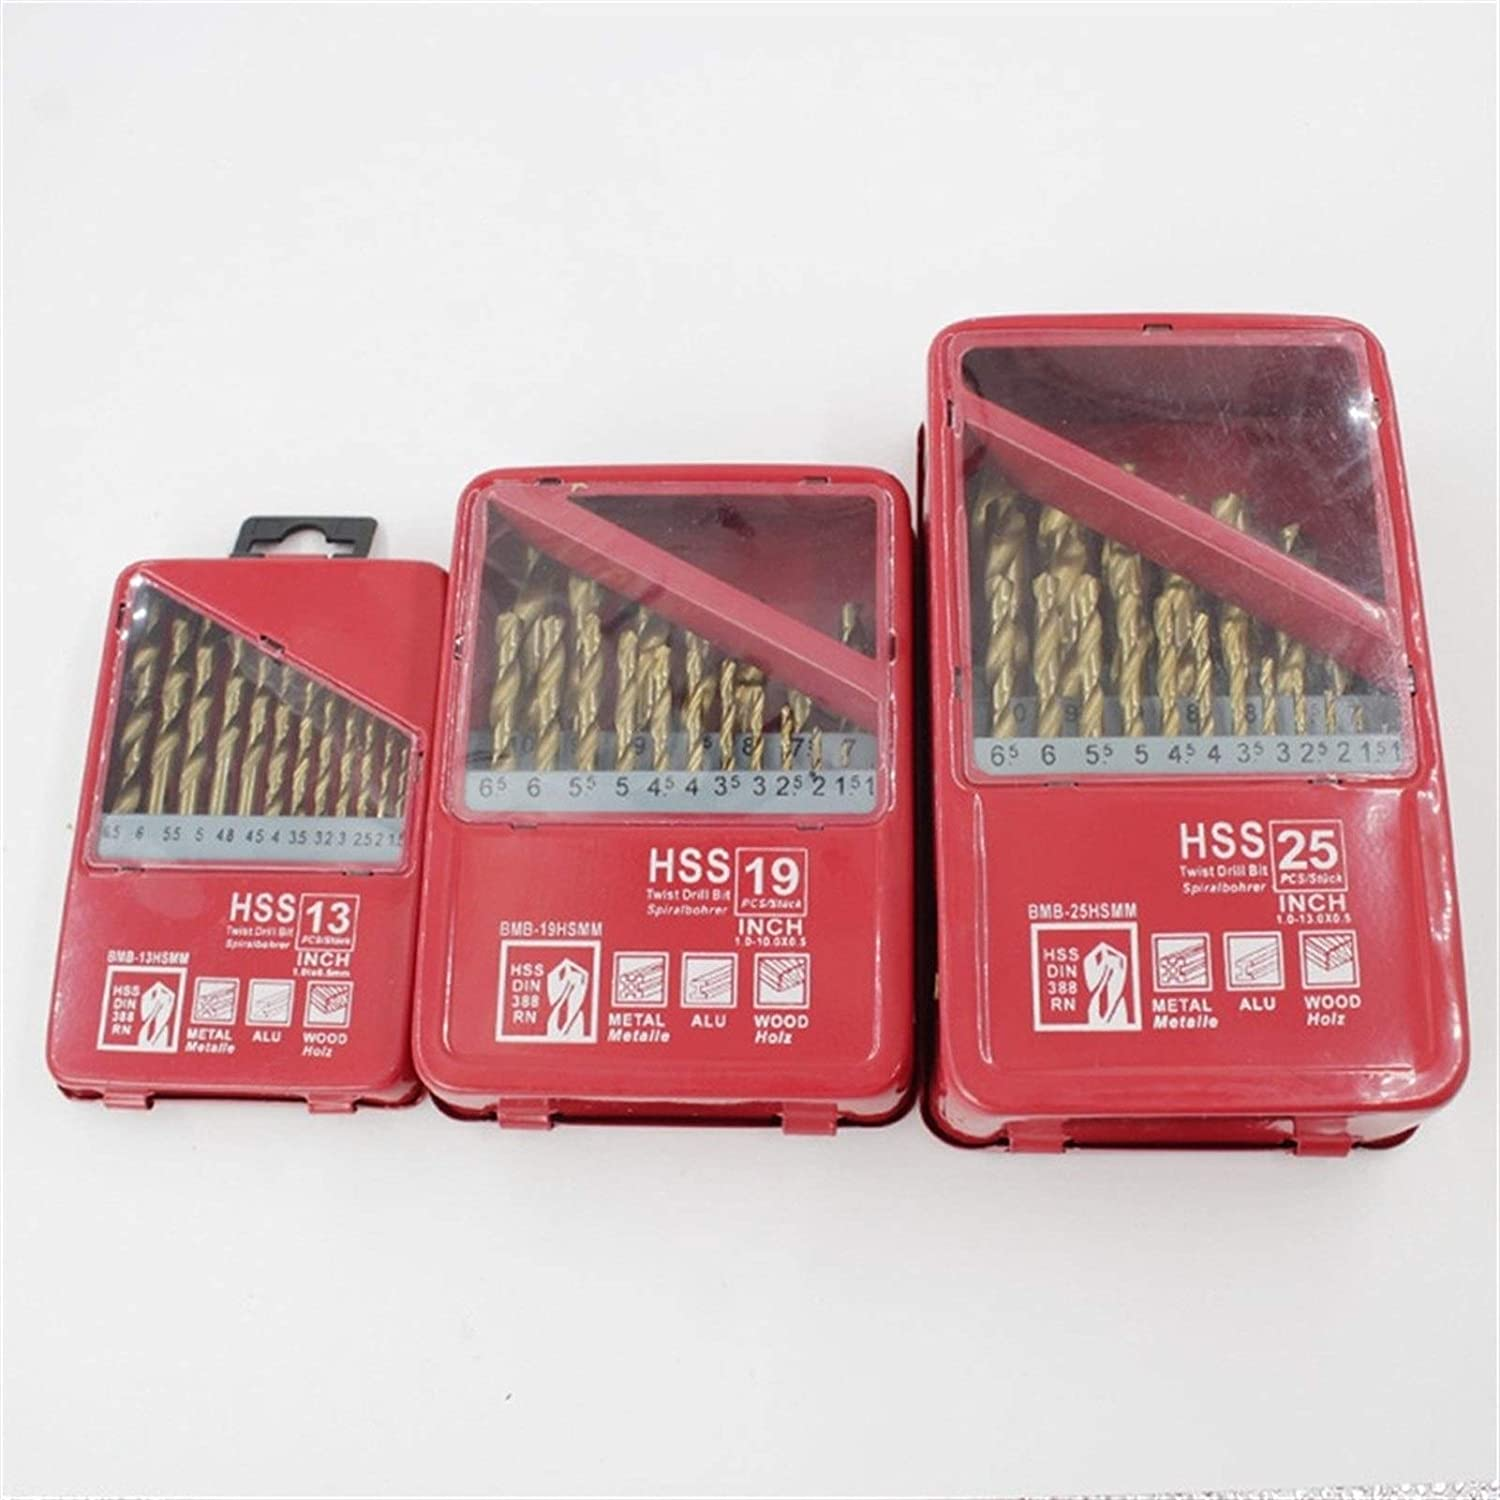 13/19/25PCS 1.0~13mm HSS Titanium Coated Drill Bit Set for Metal Woodworking Drilling Power Tools Accessories in Iron Box (Color : 25pcs) 25pcs